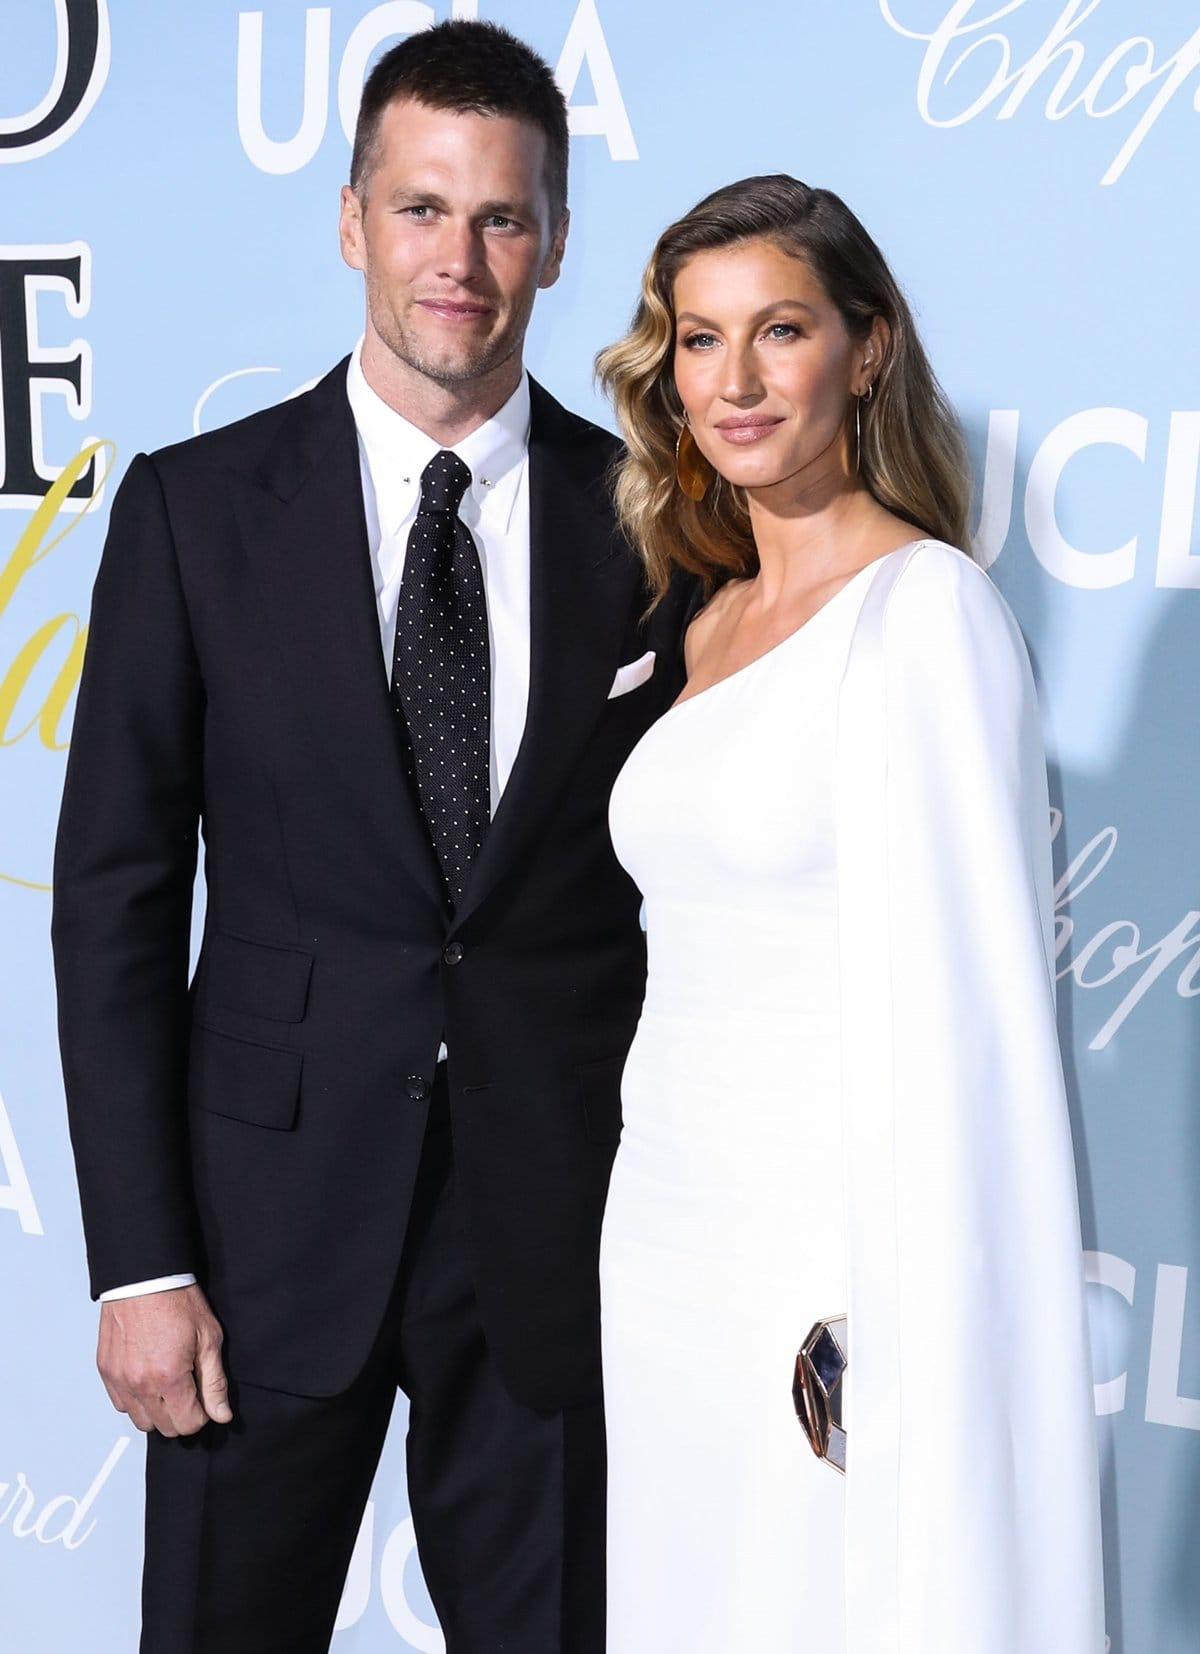 Tom Brady and Gisele Bündchen met in 2006 and got married in February 2009